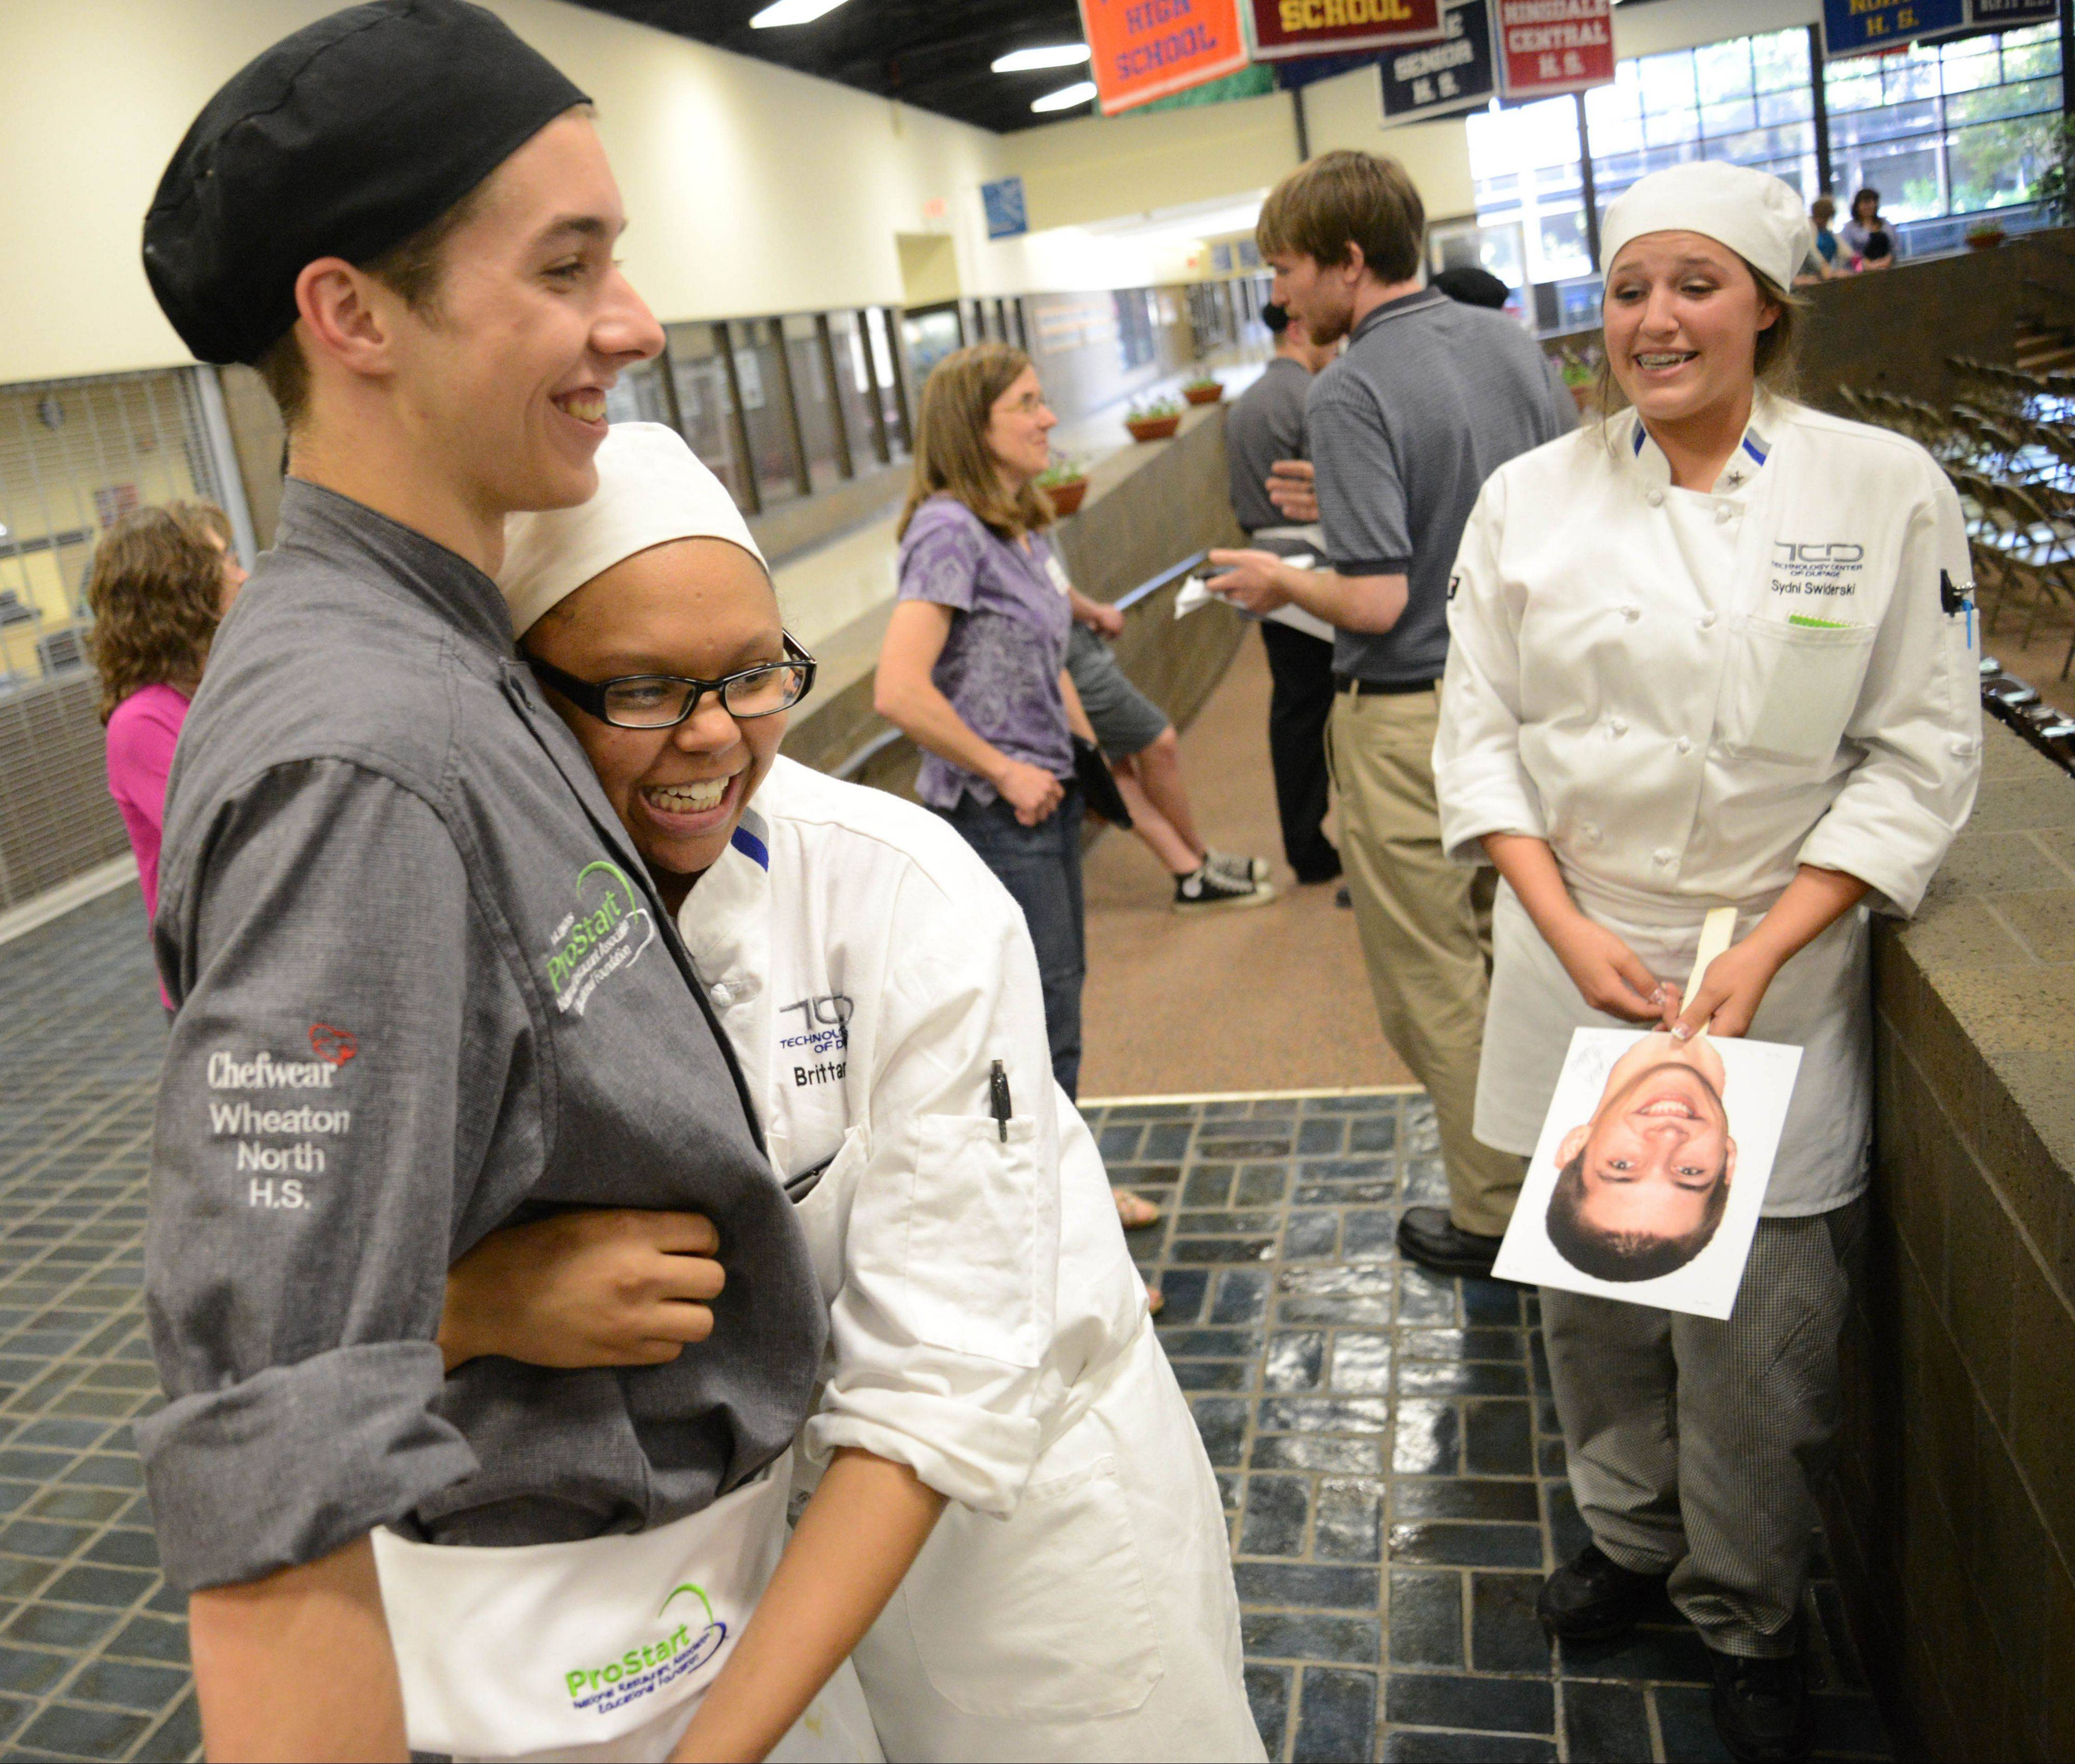 Zachary Molokie of Carol Stream gets a hug from classmate Brittany Jones of Aurora after he won the local leg of The Cutting Edge Tour student culinary competition. The ultimate winner gets the opportunity to cook with chefs at the White House.